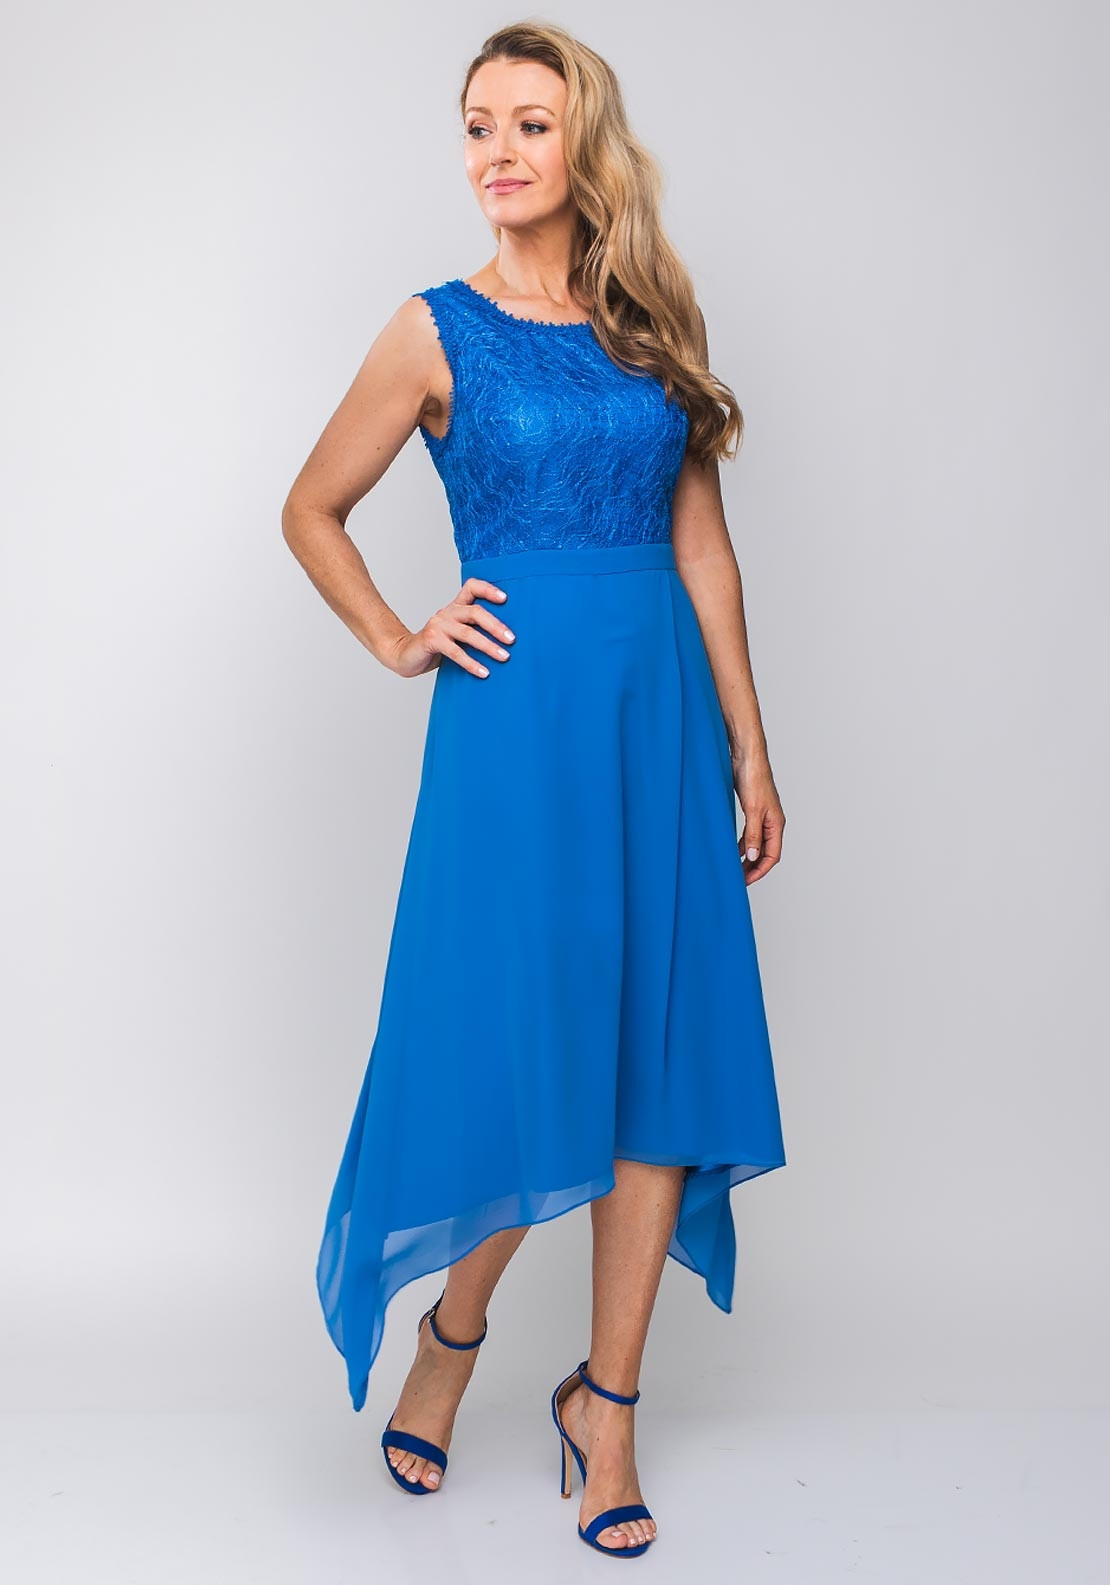 41f7f91d2df47 Ella Boo Embroidered Bodice Flared Dress, Blue. Be the first to review this  product